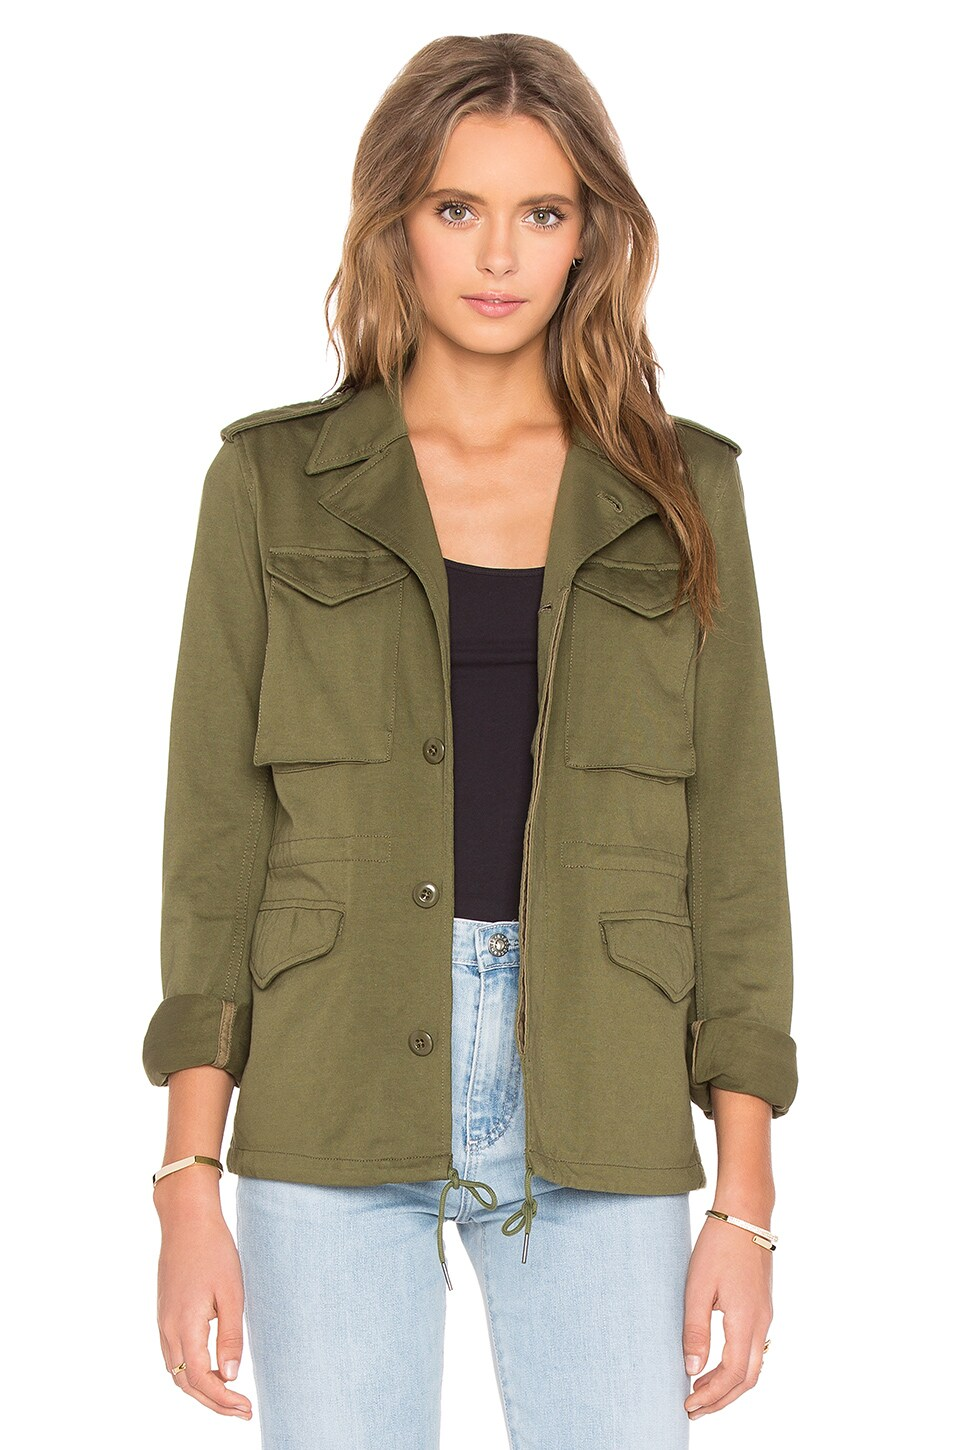 NLST Skinny M-43 Military Jacket in Olive